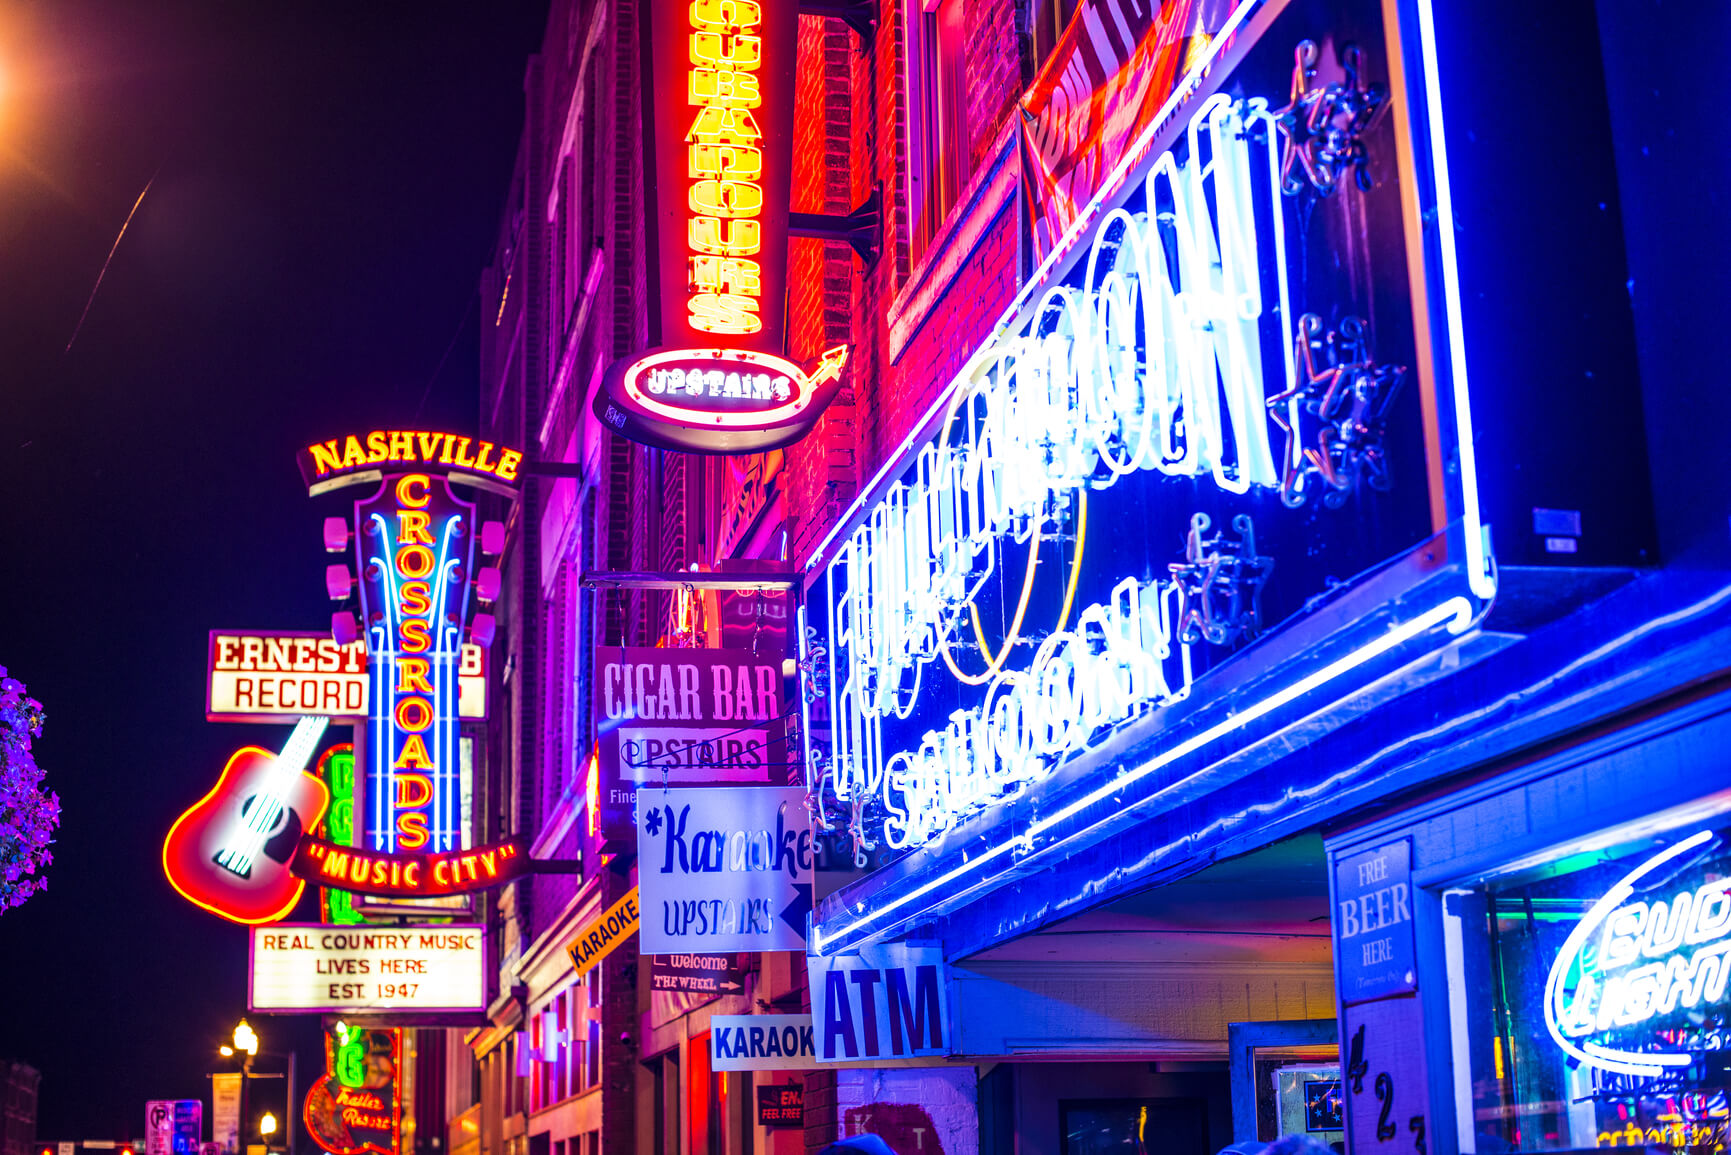 Portland, Oregon to Nashville (& vice versa) for only $190 roundtrip (Sep-Dec dates)